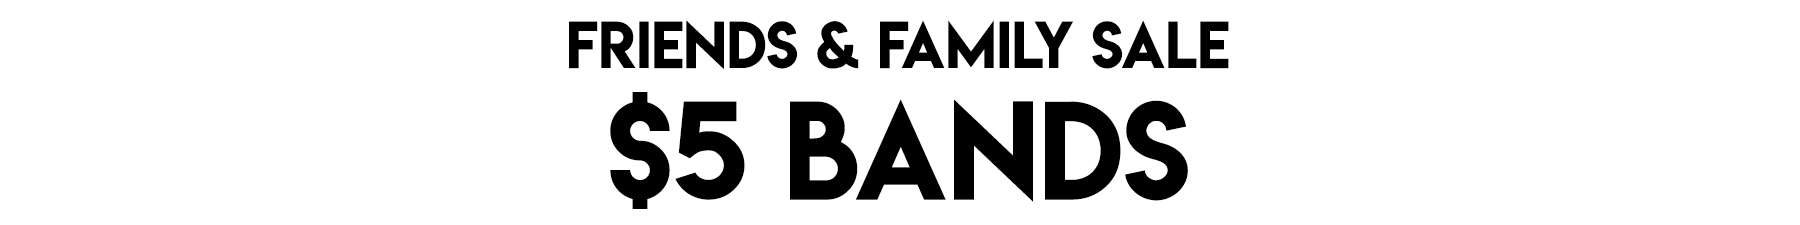 $5 Bands Family & Friends Sale